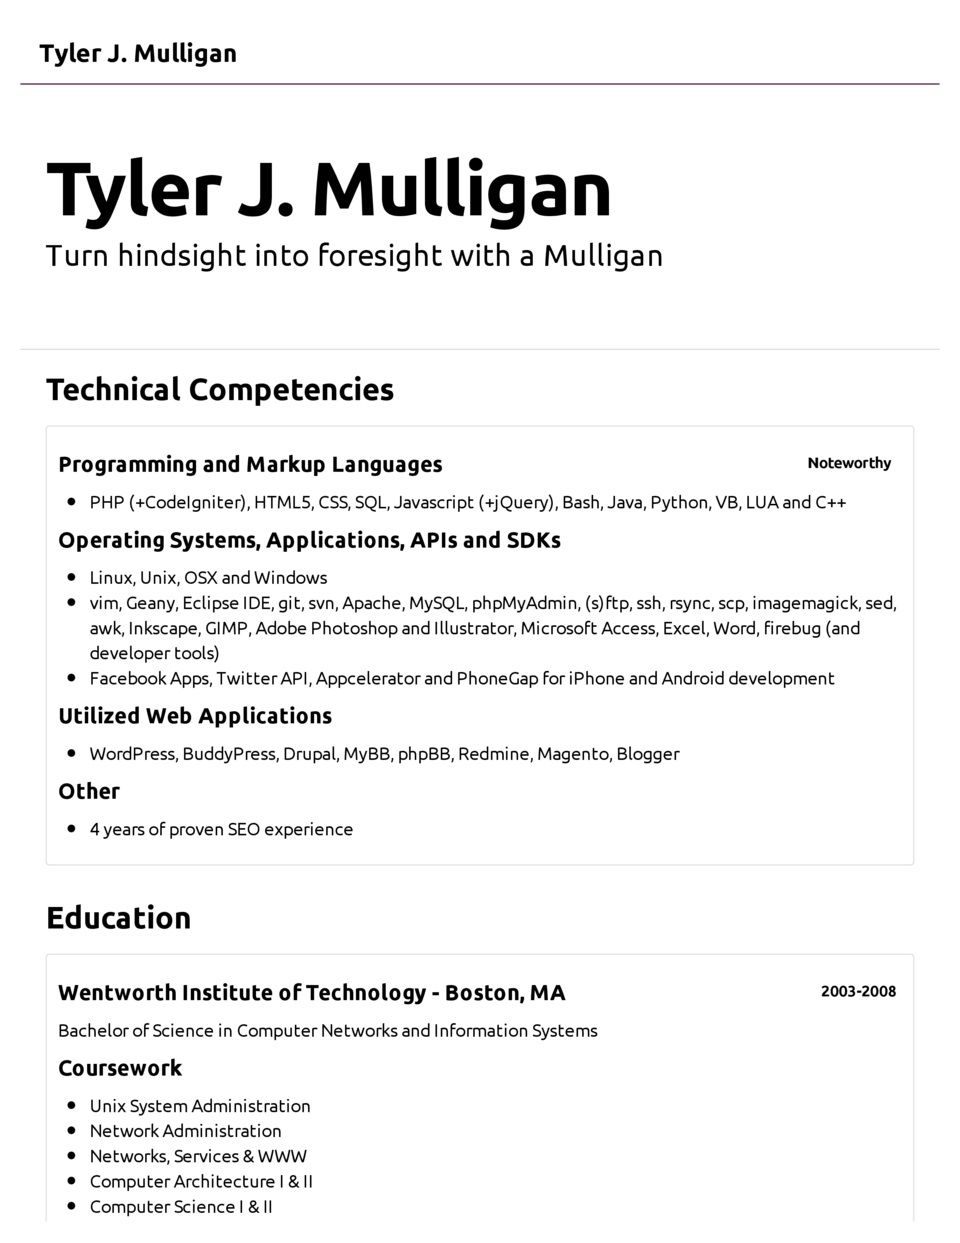 Simple Resume Example For Jobs   Http://topresume.info/simple   How To Make A Simple Resume For A Job